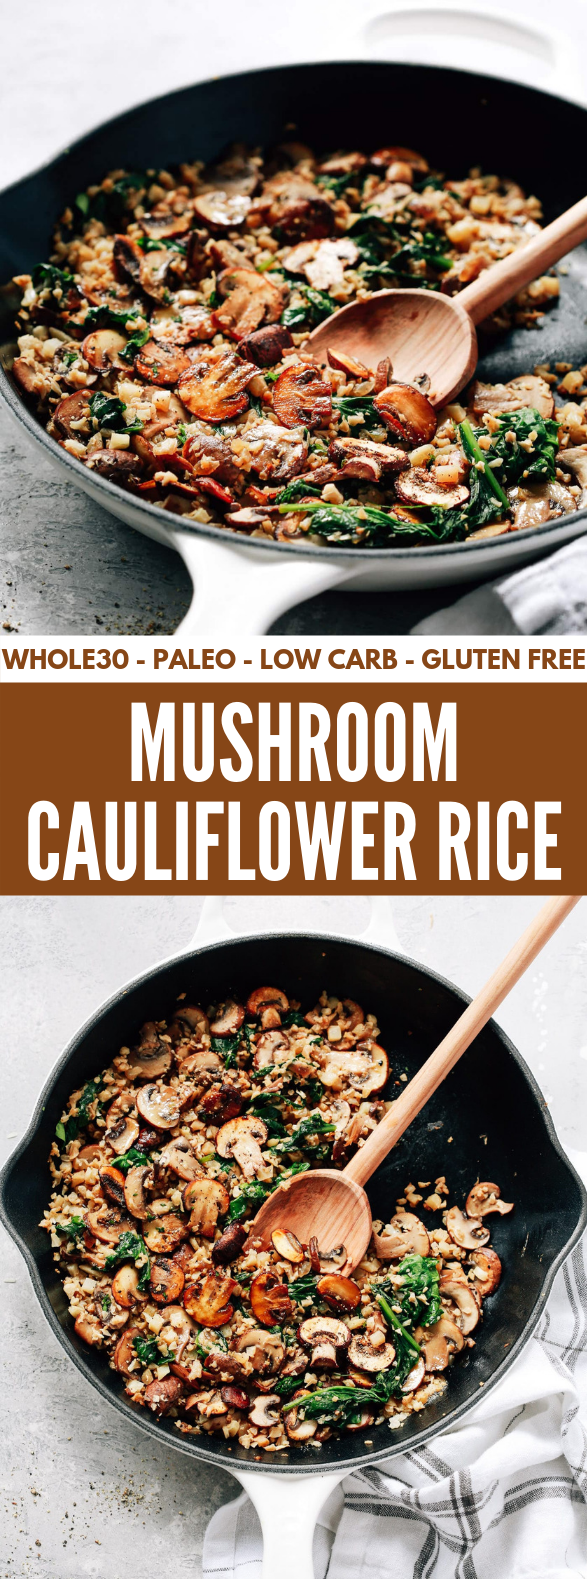 Mushroom Cauliflower Rice Skillet Recipe #healthydinner #lowcarb